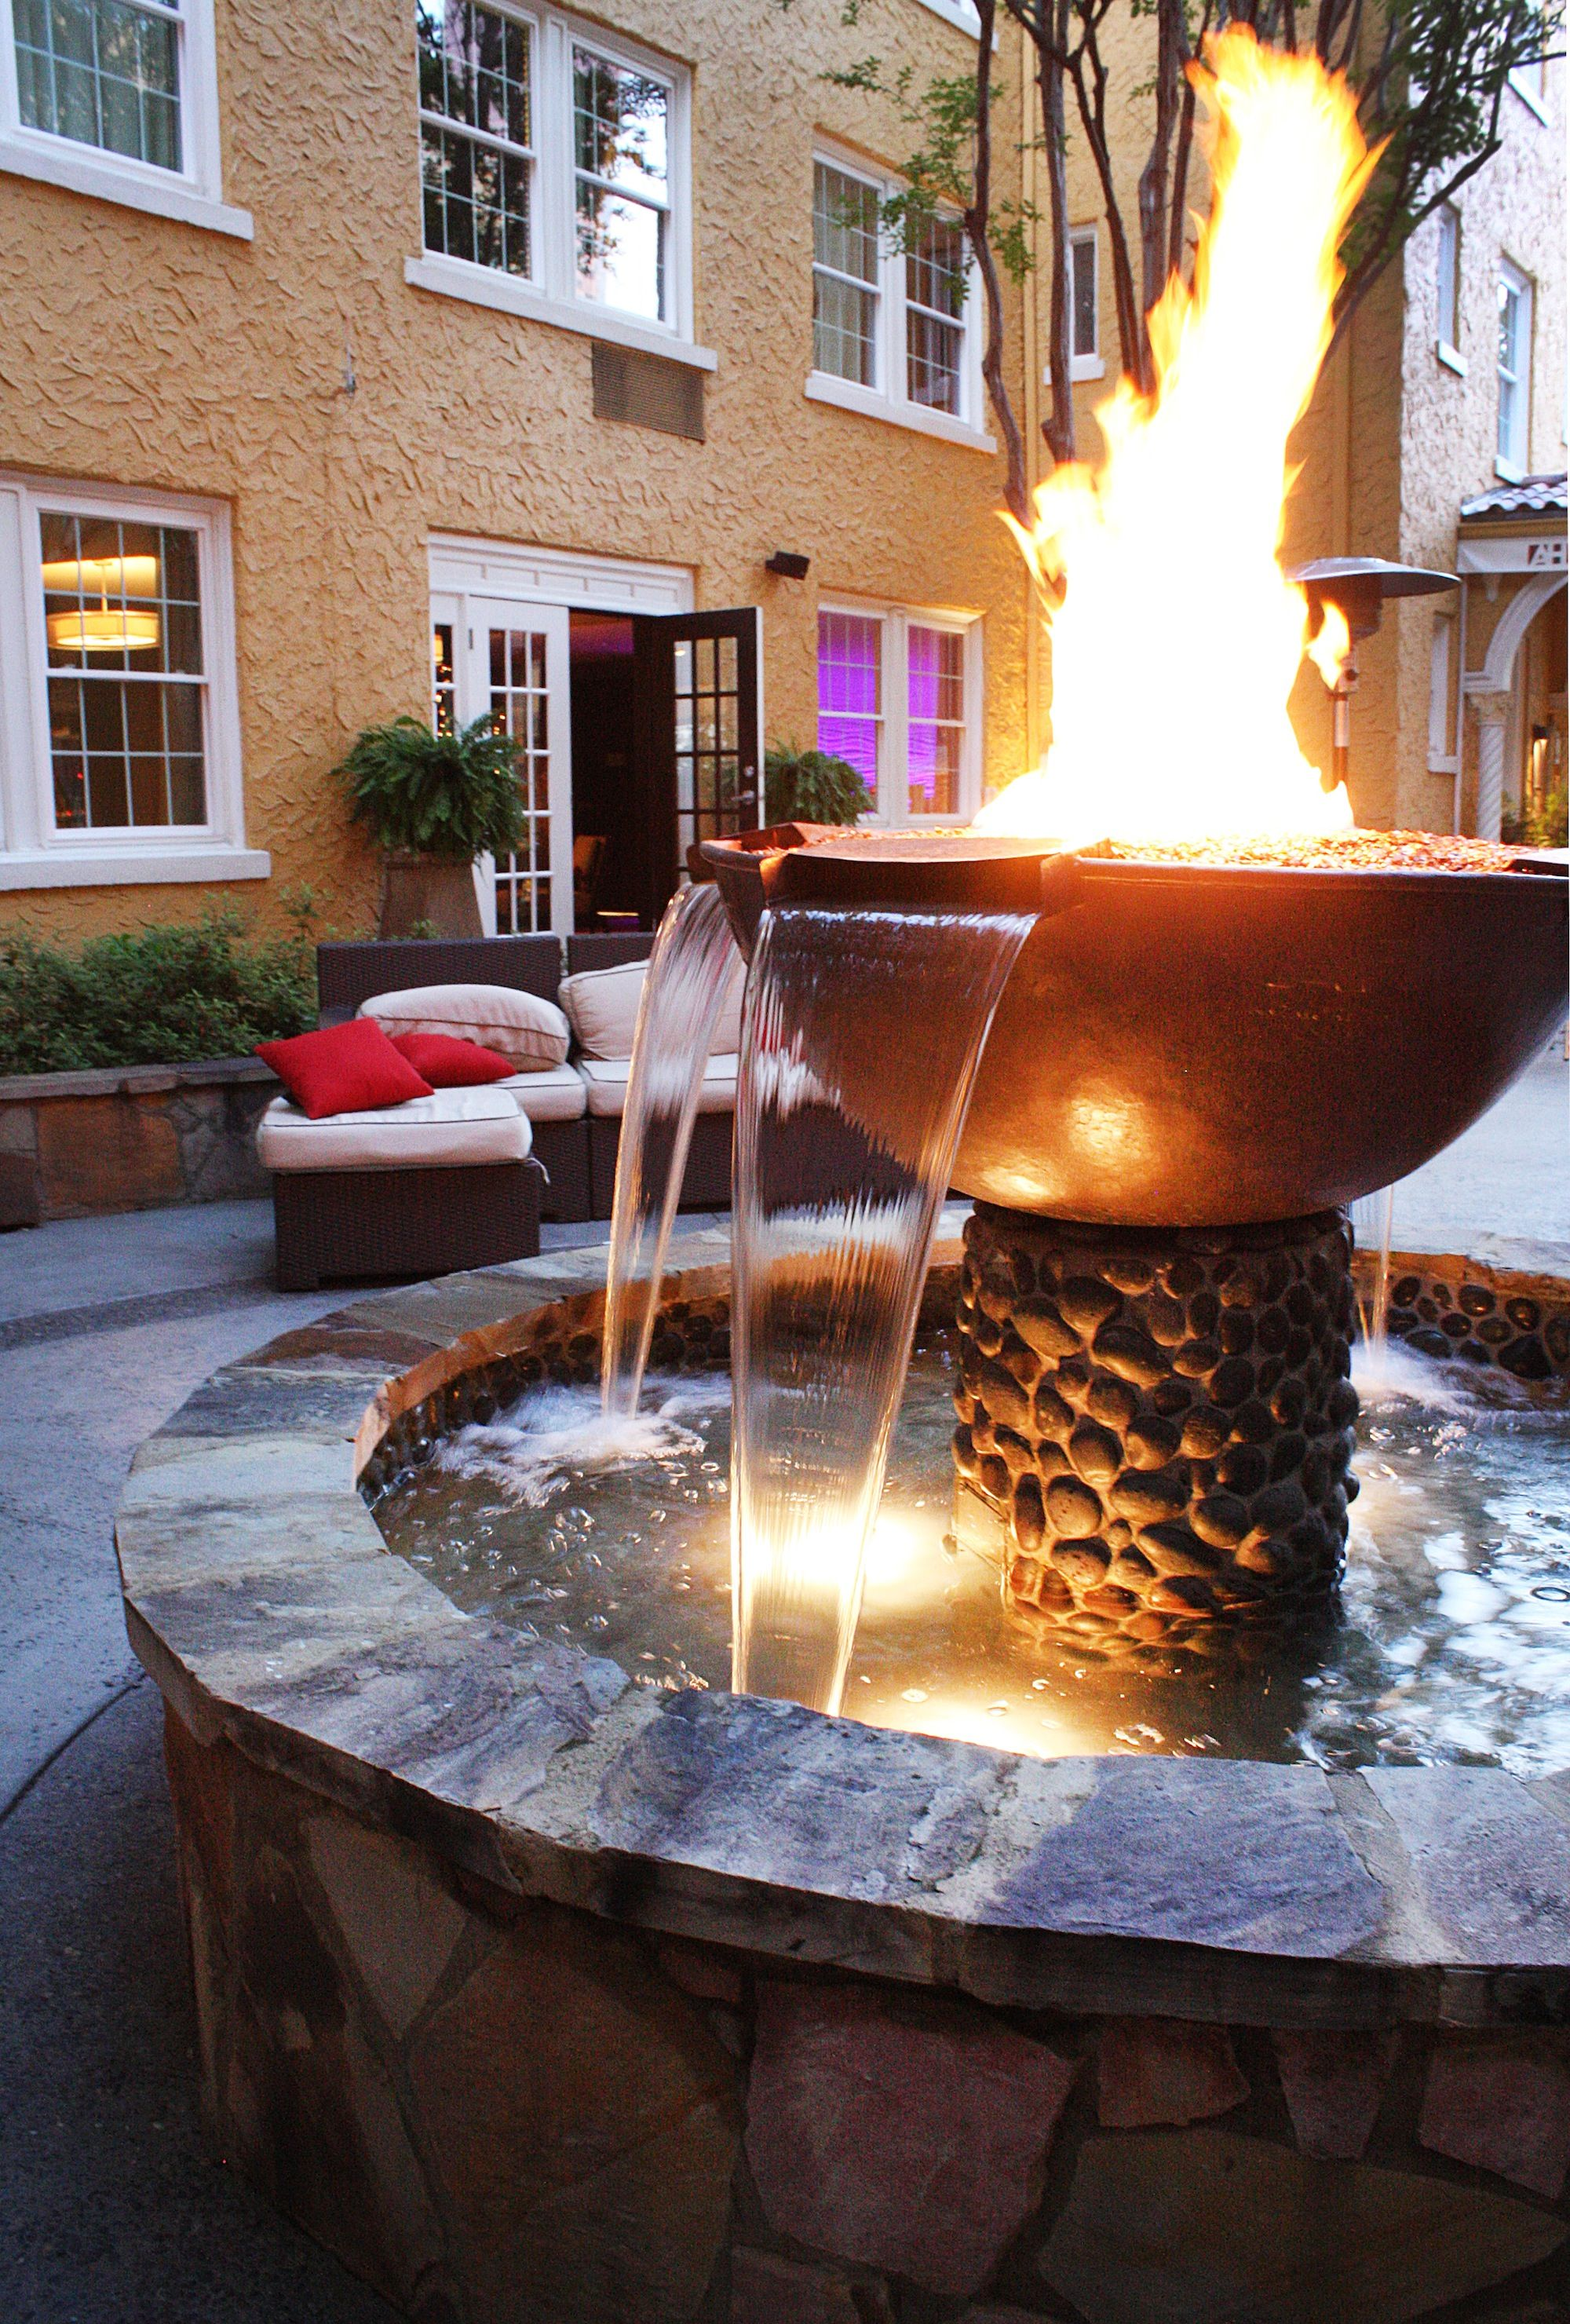 Would Love To Bring A Fire And Water Feature Like This Together For A Pool Maybe 3 Columns On One End Of Poo Diy Water Fountain Fountains Outdoor Diy Fountain